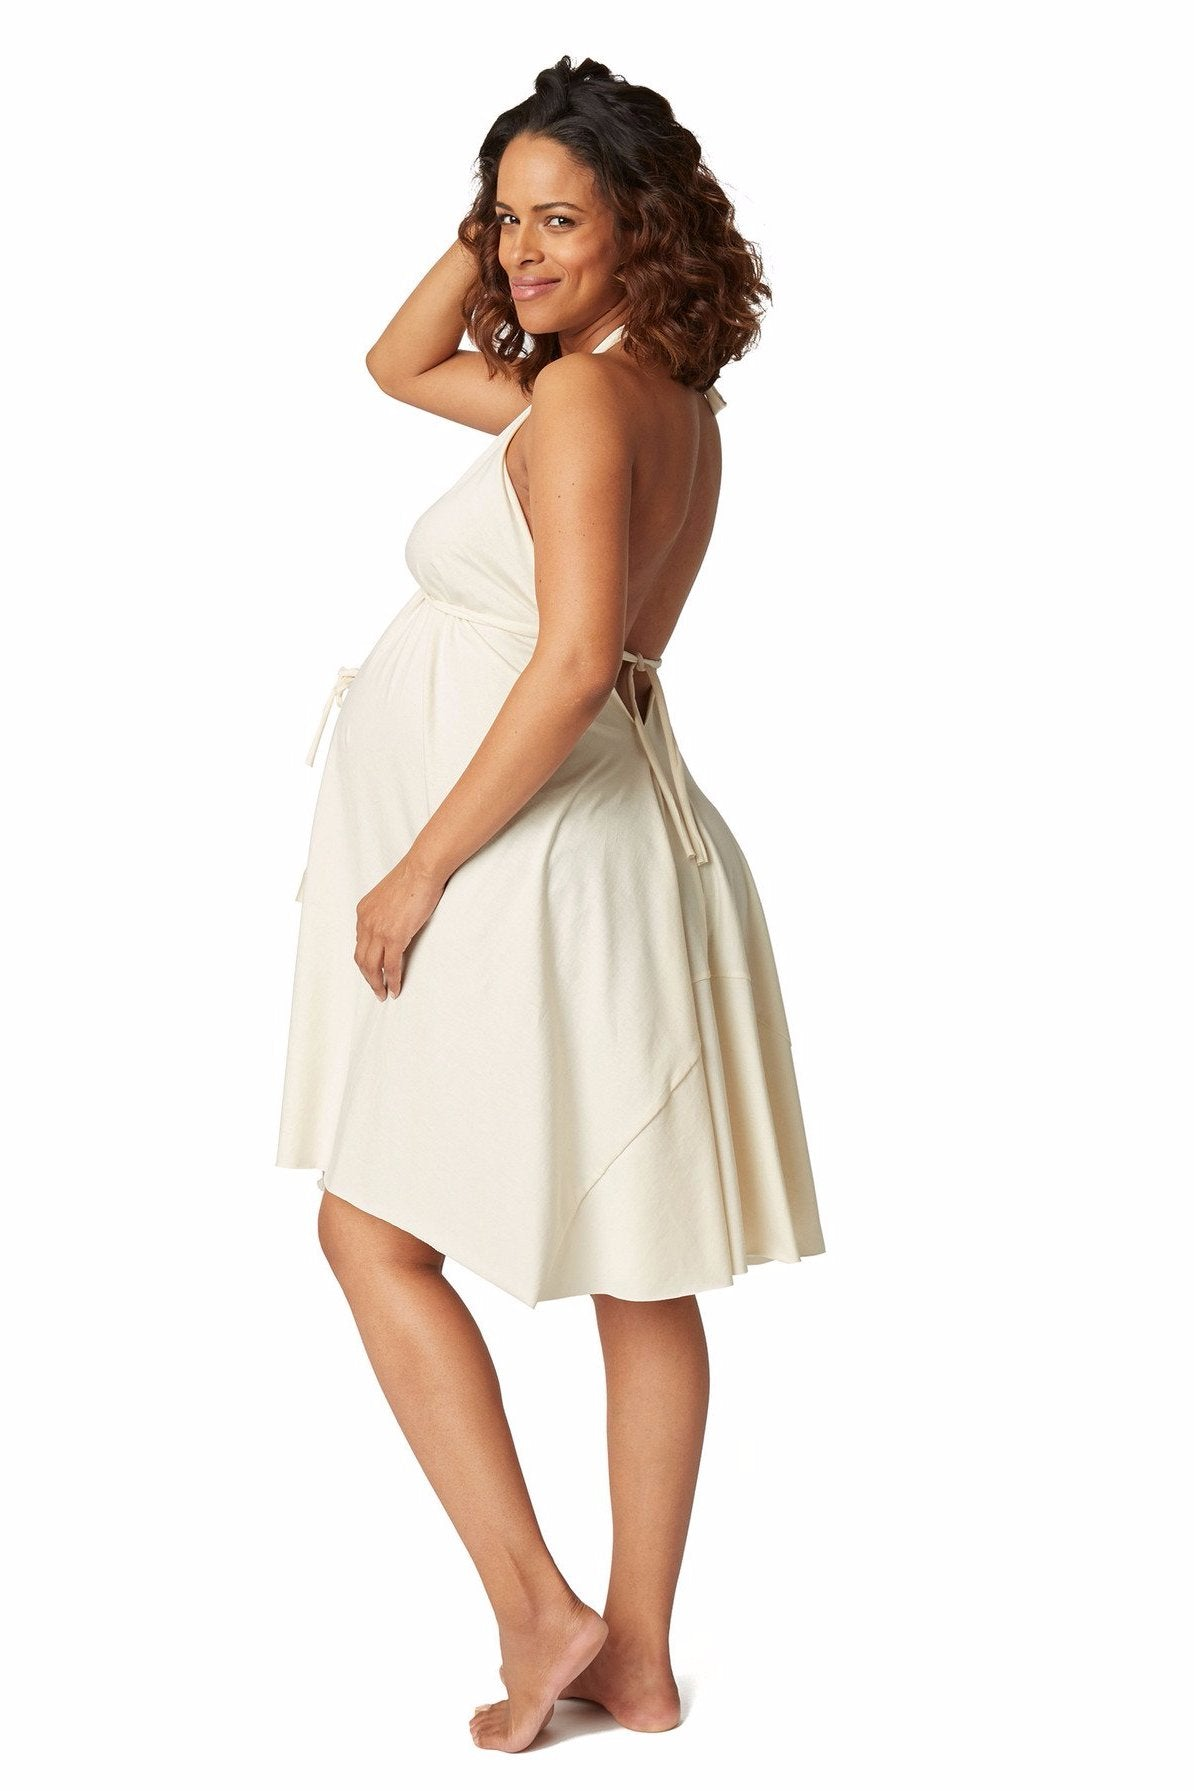 Tie halter neck labor gown for easy skin to skin